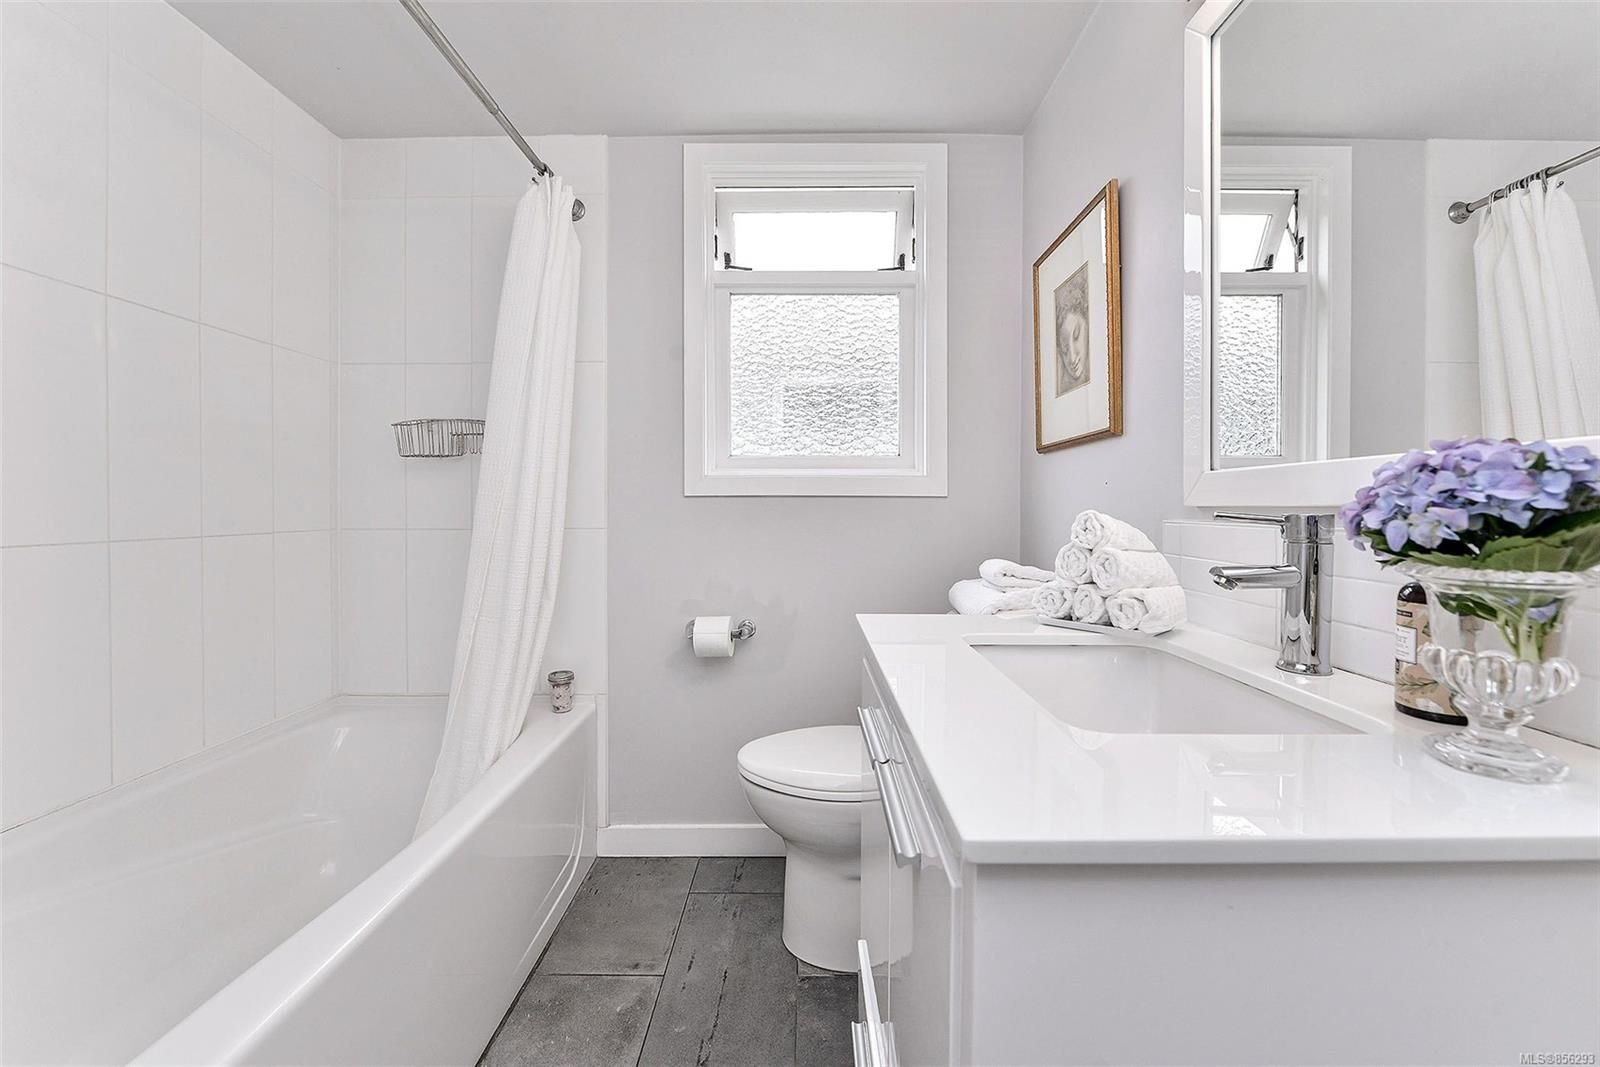 Photo 22: Photos: 1753 Armstrong Ave in : OB North Oak Bay House for sale (Oak Bay)  : MLS®# 856293